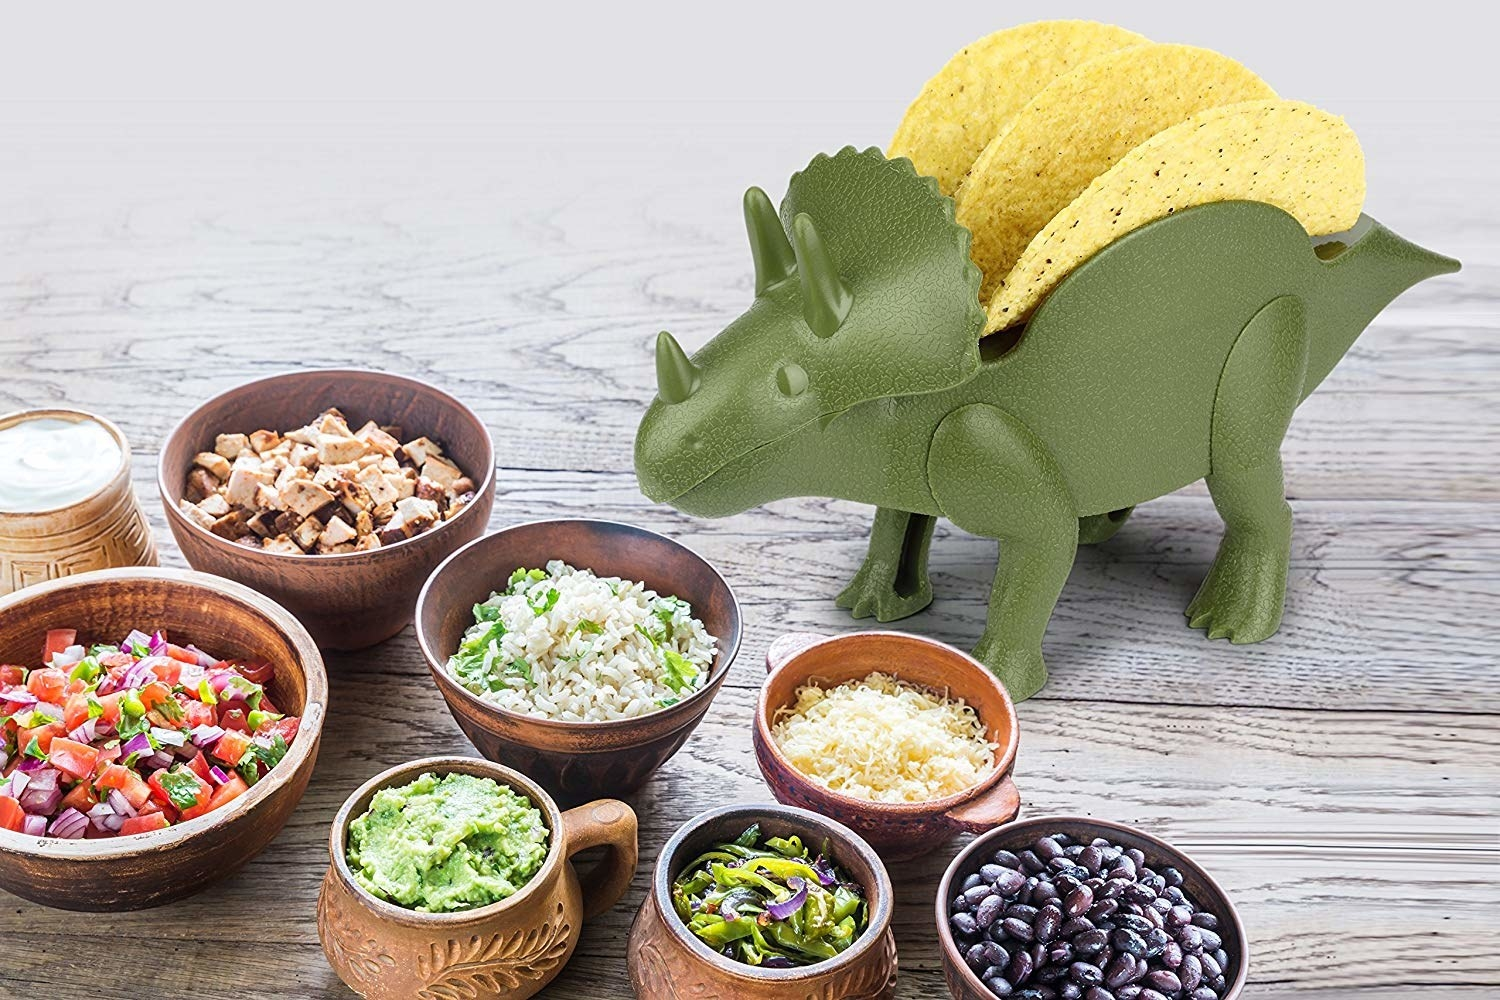 A green triceratops-shaped figure holding two taco shells on its back